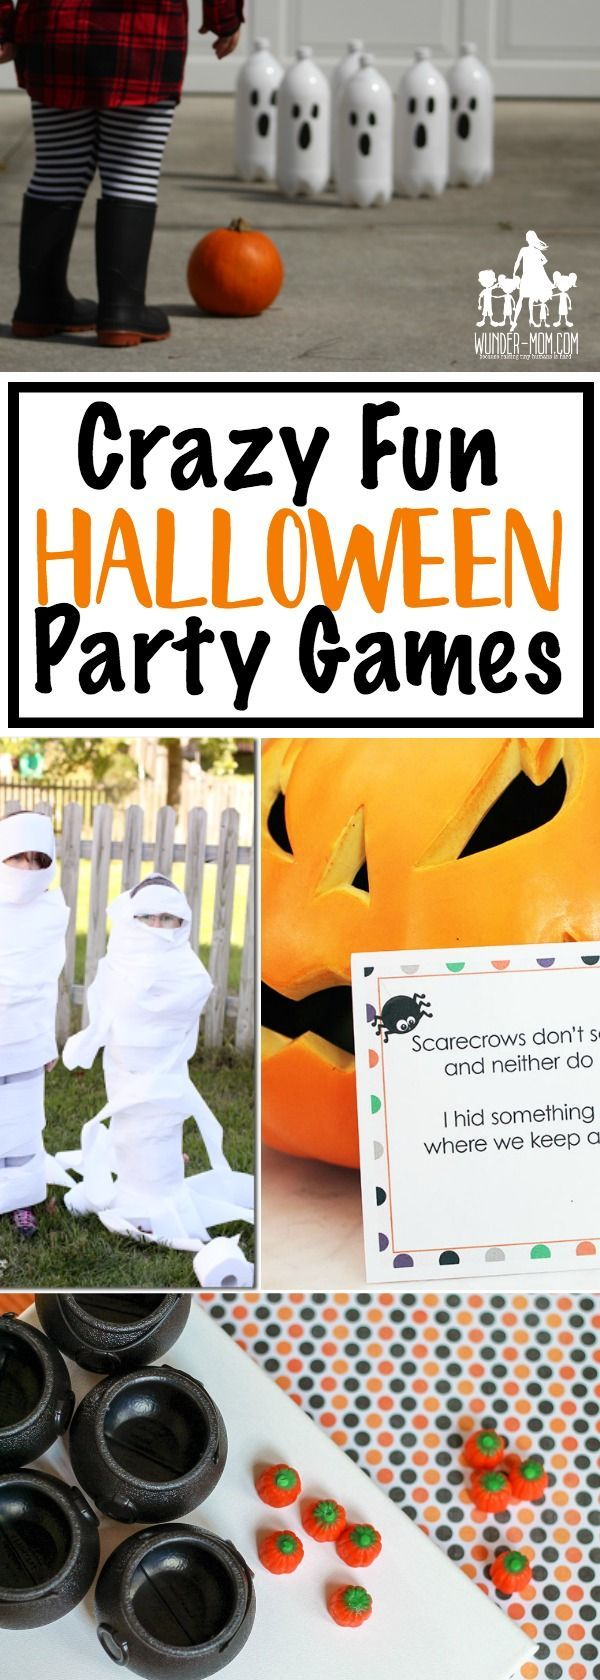 halloween party games for kids - these are just great for a school halloween party or fun with the kids at home.  Planning a fall festival?  Check these out!